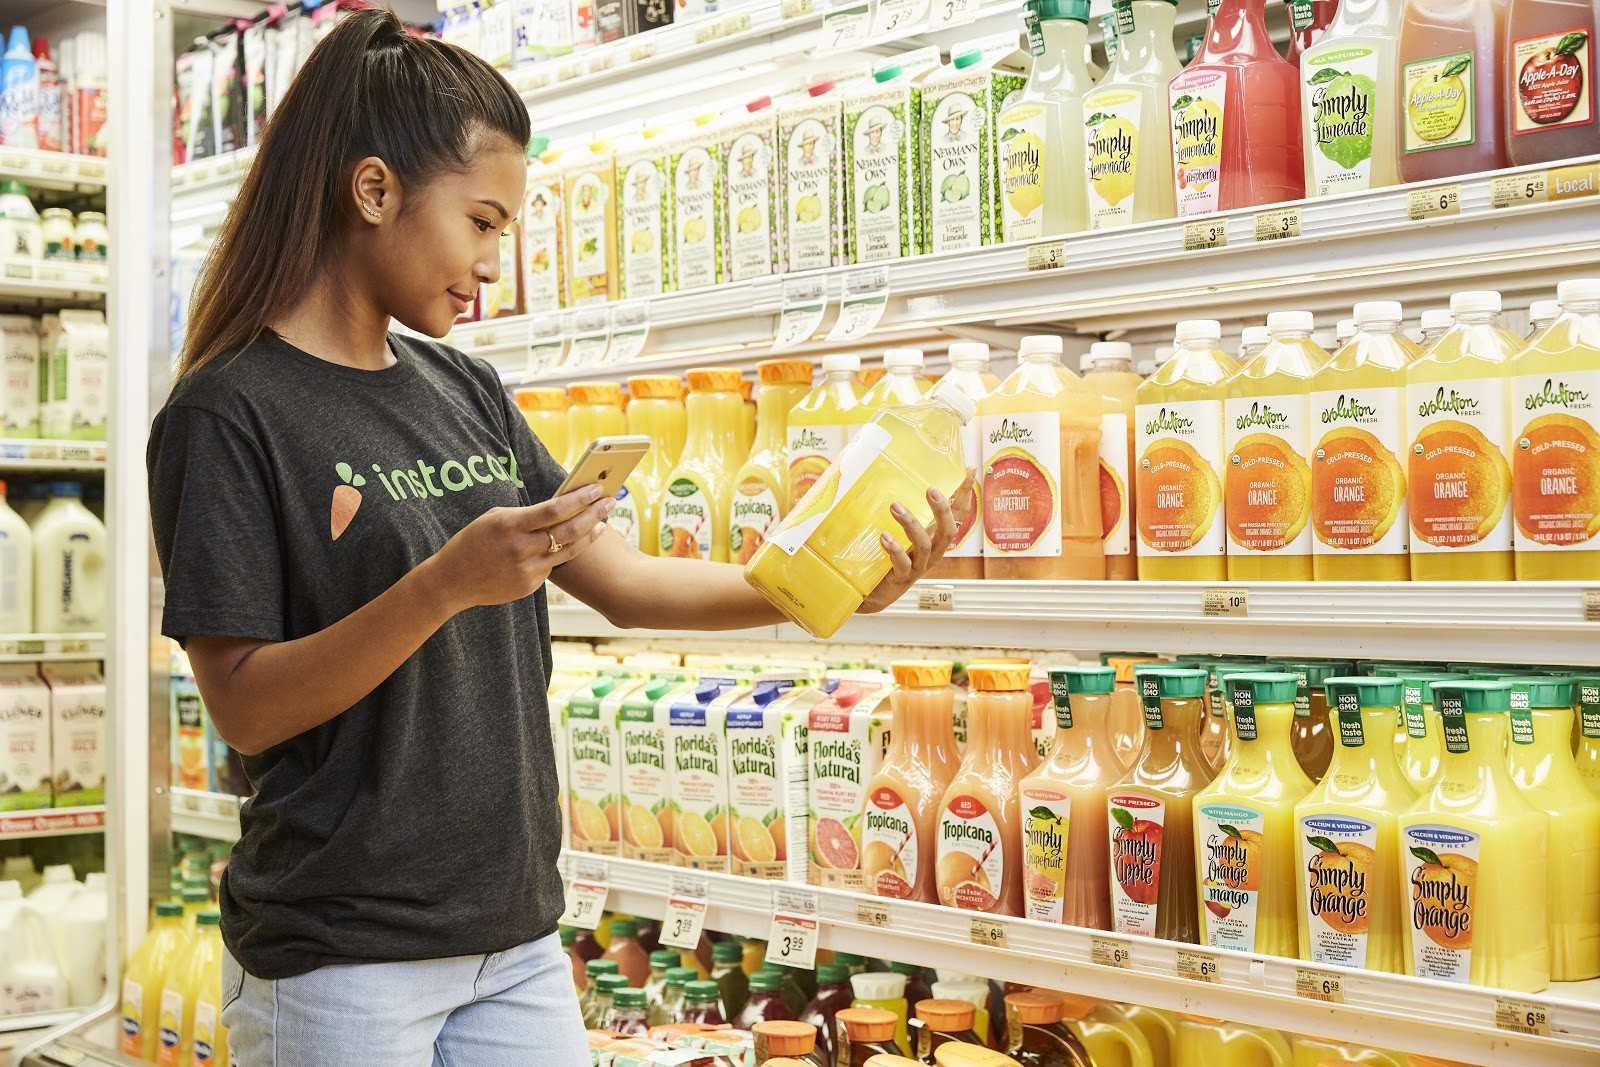 Shopper Mailbag: Your Questions Answered - The Instacart